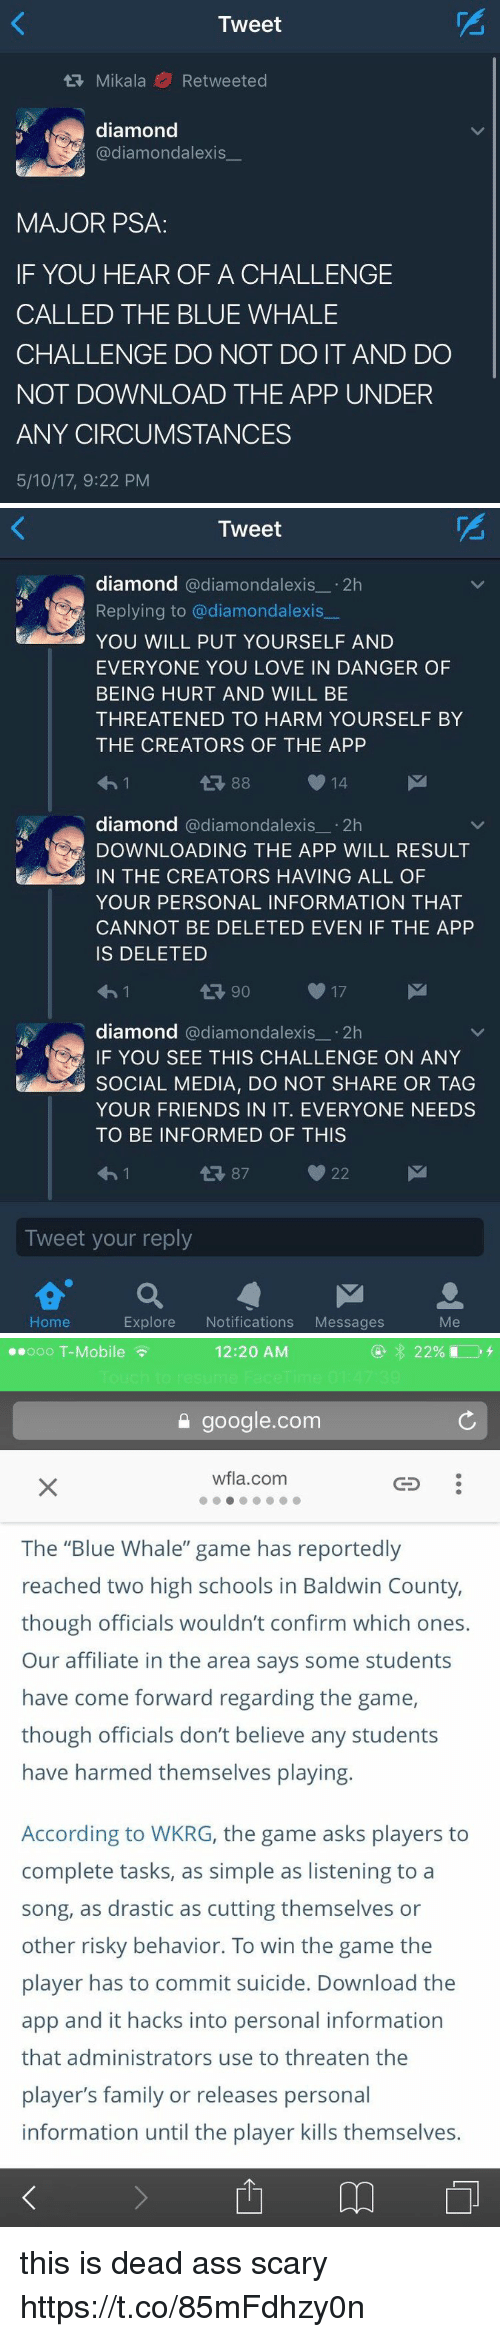 "Ass, Family, and Friends: Tweet  tR, Mikala Re tweeted  diamond  @diamond alexis  MAJOR PSA  IF YOU HEAR OF A CHALLENGE  CALLED THE BLUE WHALE  CHALLENGE DO NOT DO IT AND DO  NOT DOWNLOAD THE APP UNDER  ANY CIRCUMSTANCES  5/10/17, 9:22 PM   Tweet  diamond  @diamondalexis  2h  Replying to adiamondalexis  YOU WILL PUT YOURSELF AND  EVERYONE YOU LOVE IN DANGER OF  BEING HURT AND WILL BE  THREATENED TO HARM YOURSELF BY  THE CREATORS OF THE APP  14  diamond  @diamond alexis  2h  DOWNLOADING THE APP WILL RESULT  kan IN THE CREATORS HAVING ALL OF  YOUR PERSONAL INFORMATION THAT  CANNOT BE DELETED EVEN IF THE APP  IS DELETED  17  t 90  diamond  a diamondalexis 2h  F YOU SEE THIS CHALLENGE ON ANY  SOCIAL MEDIA, DO NOT SHARE OR TAG  YOUR FRIENDS IN IT. EVERYONE NEEDS  TO BE INFORMED OF THIS  22  87  Tweet your reply  a M  Home  Explore  Notifications  Messages  Me   12:20 AM  ooo T-Mobile  google.com  wfla.com  The ""Blue Whale"" game has reportedly  reached two high schools in Baldwin County,  though officials wouldn't confirm which ones.  Our affiliate in the area says some students  have come forward regarding the game,  though officials don't believe any students  have harmed themselves playing.  According to WKRG, the game asks players to  complete tasks, as simple as listening to a  song, as drastic as cutting themselves or  other risky behavior. To win the game the  player has to commit suicide. Download the  app and it hacks into personal information  that administrators use to threaten the  player's family or releases personal  information until the player kills themselves. this is dead ass scary https://t.co/85mFdhzy0n"